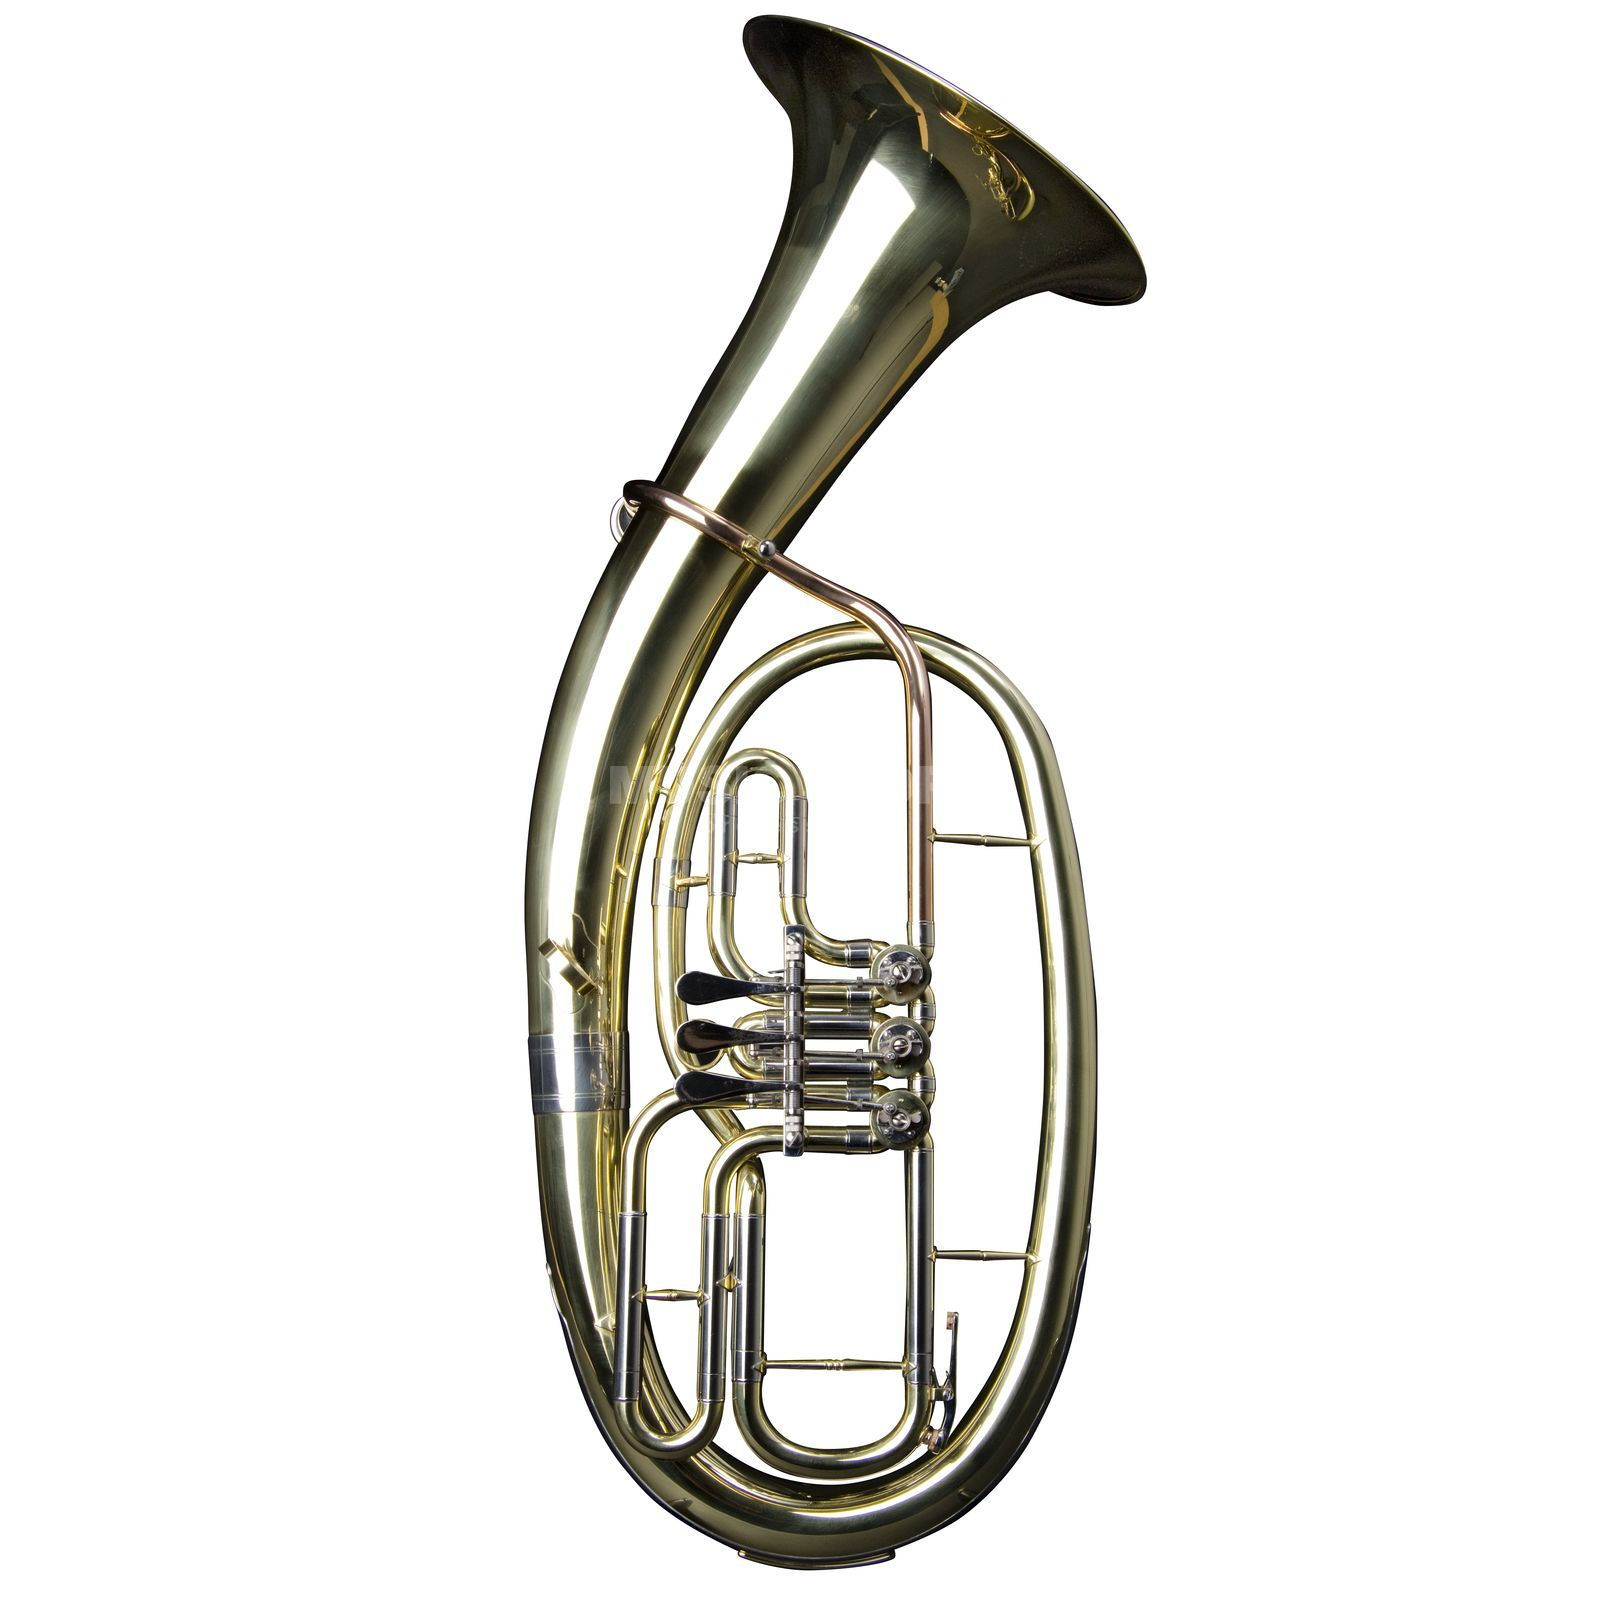 Monzani MZBR-1211L Bb-Tenor Horn Brass, Lacquered, 3 Valves Изображение товара